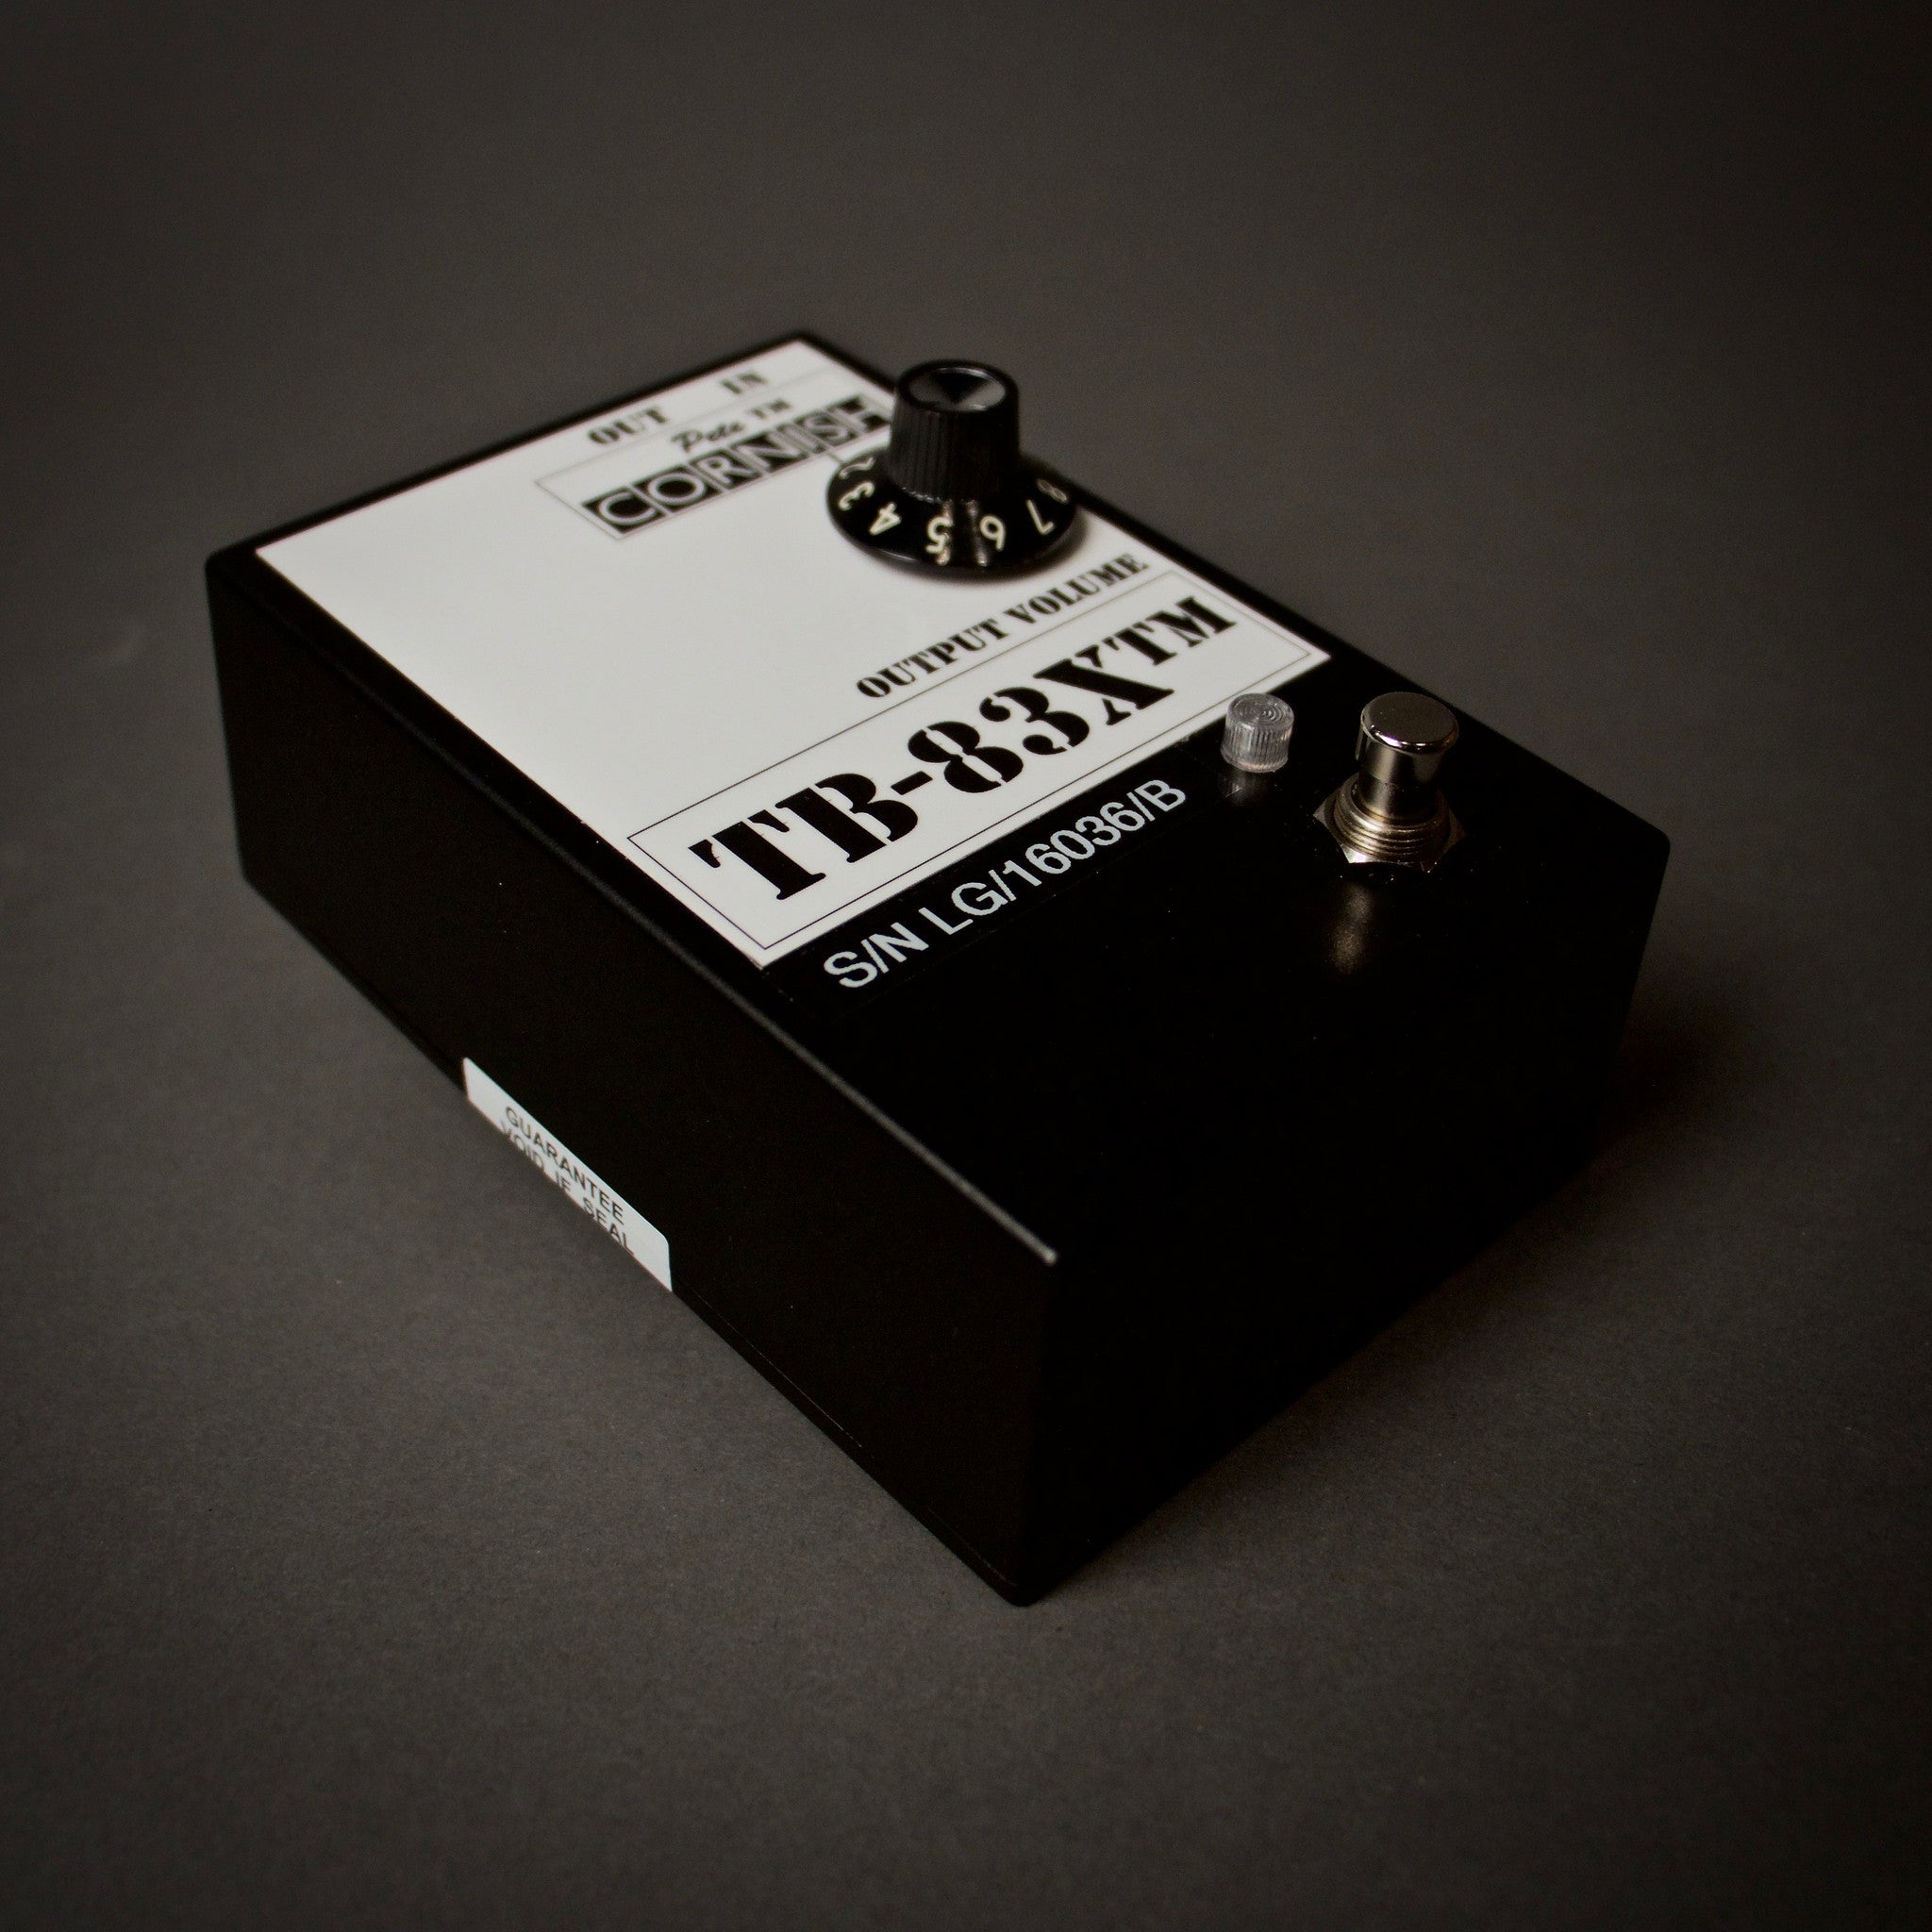 Pete Cornish TB-83X Treble Booster Guitar Pedals